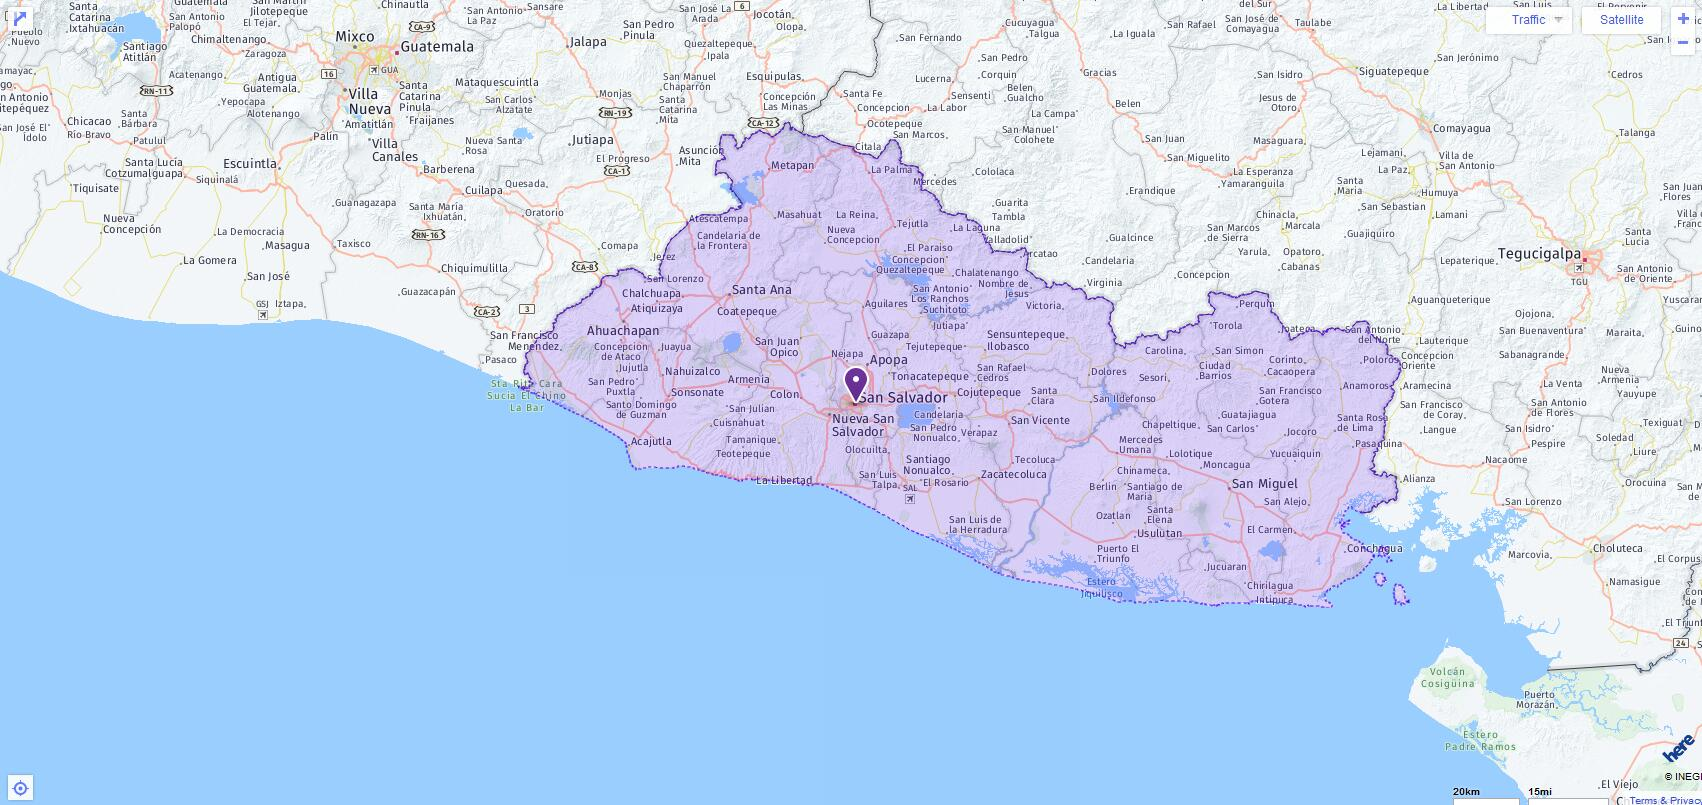 ACT Test Centers and Dates in El Salvador